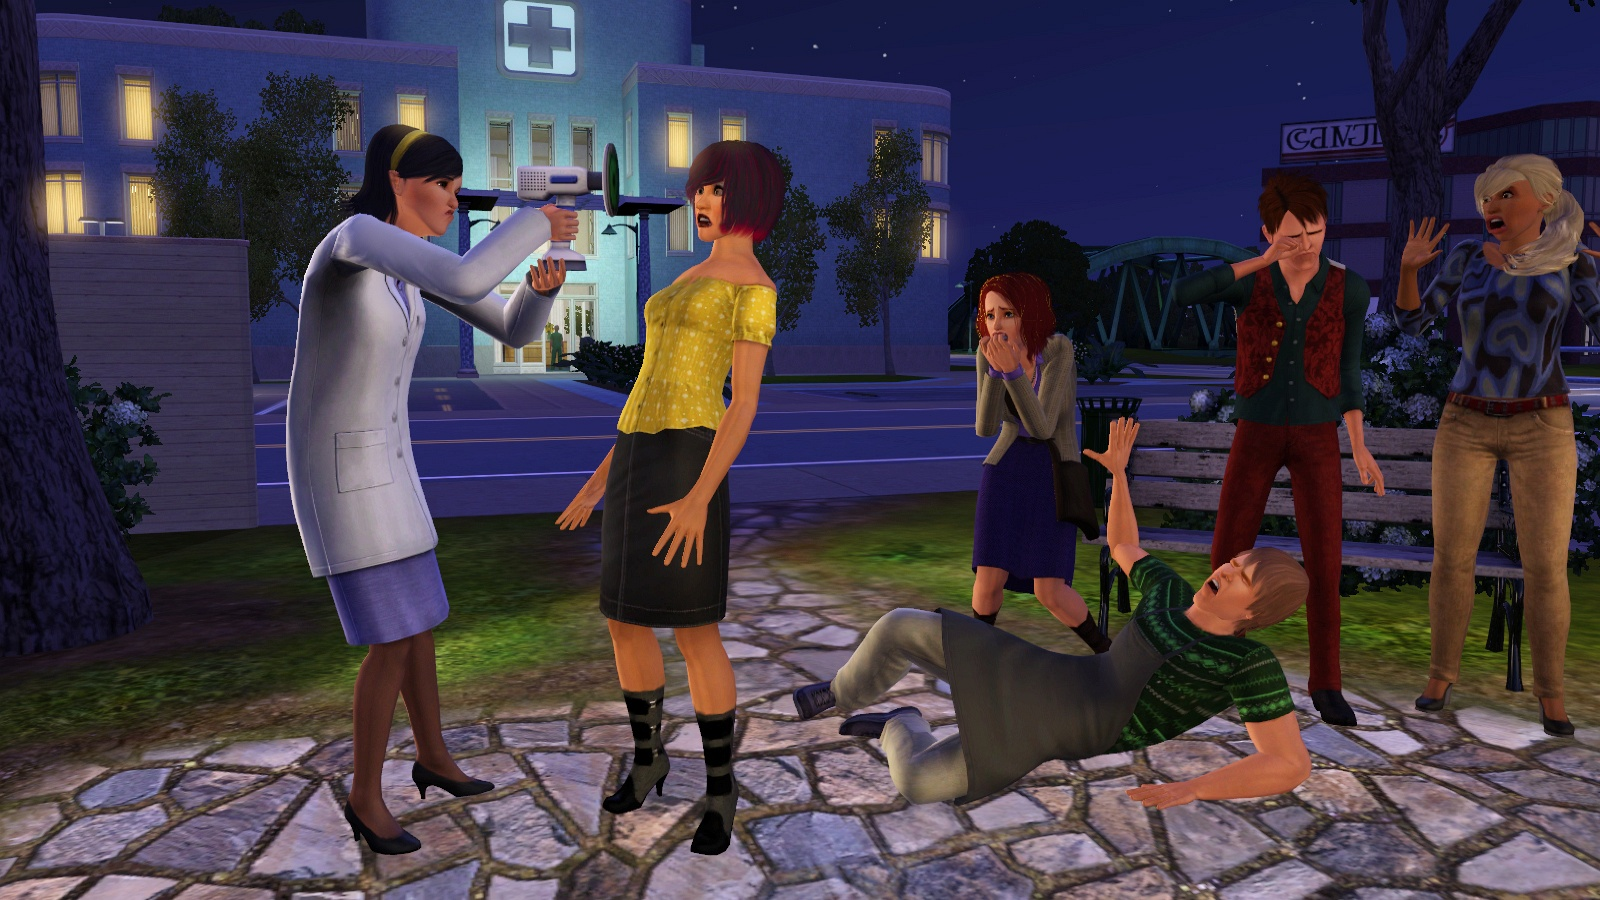 The sims 3 ambitions The Sims 3 Ambitions Photo 24457870 Fanpop.